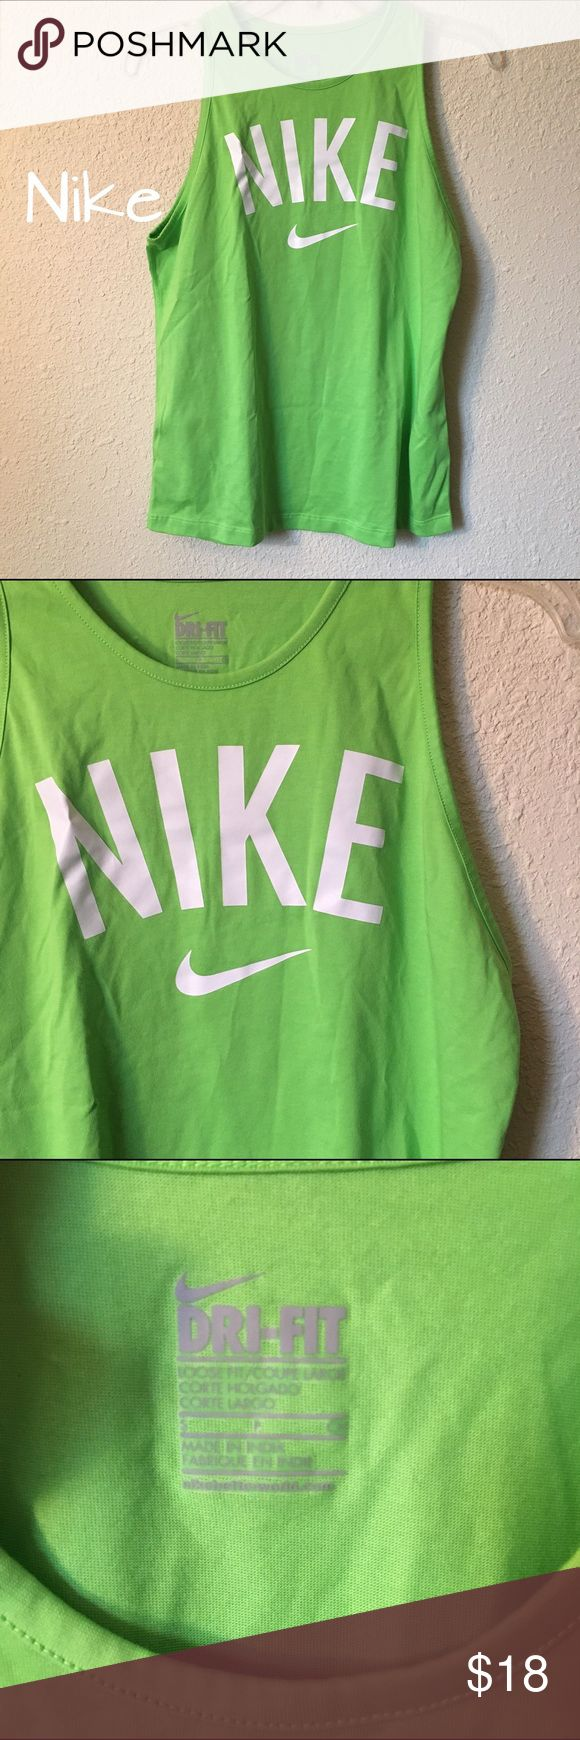 Nike tank top Green Nike tank top in excellent condition! Nike Tops Tank Tops